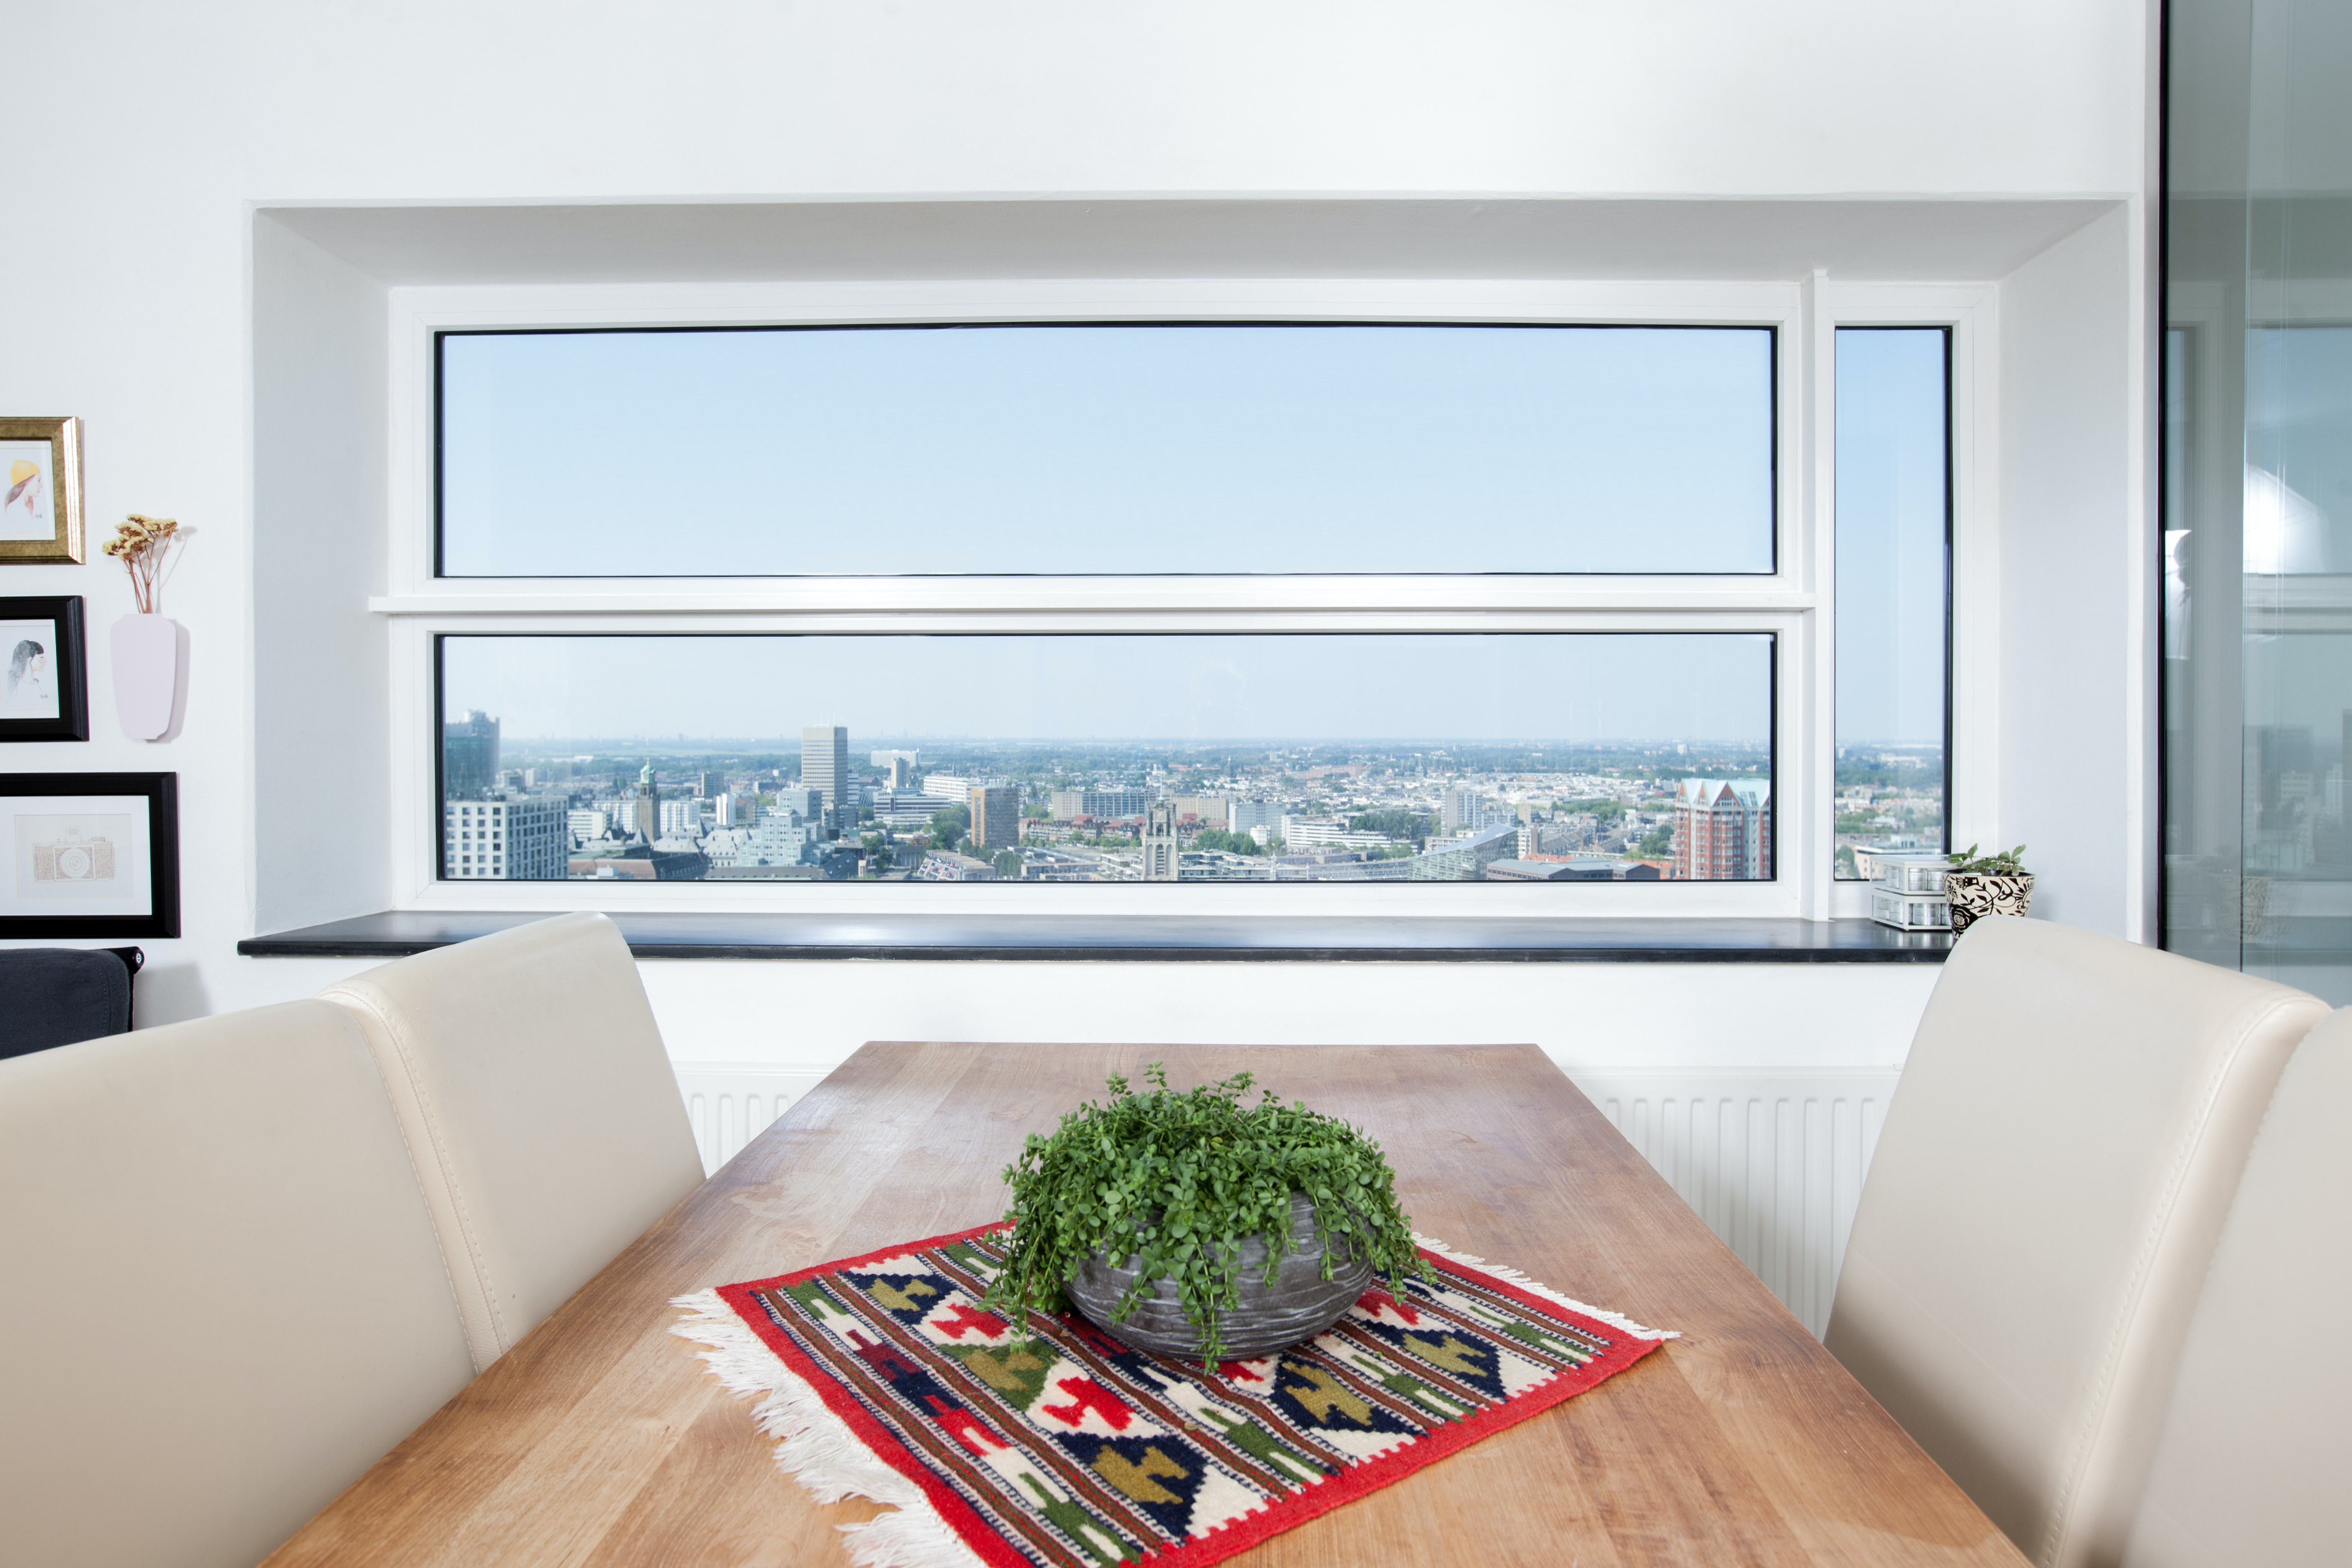 A potted plant on a table in a room with a wide window looking out on the city